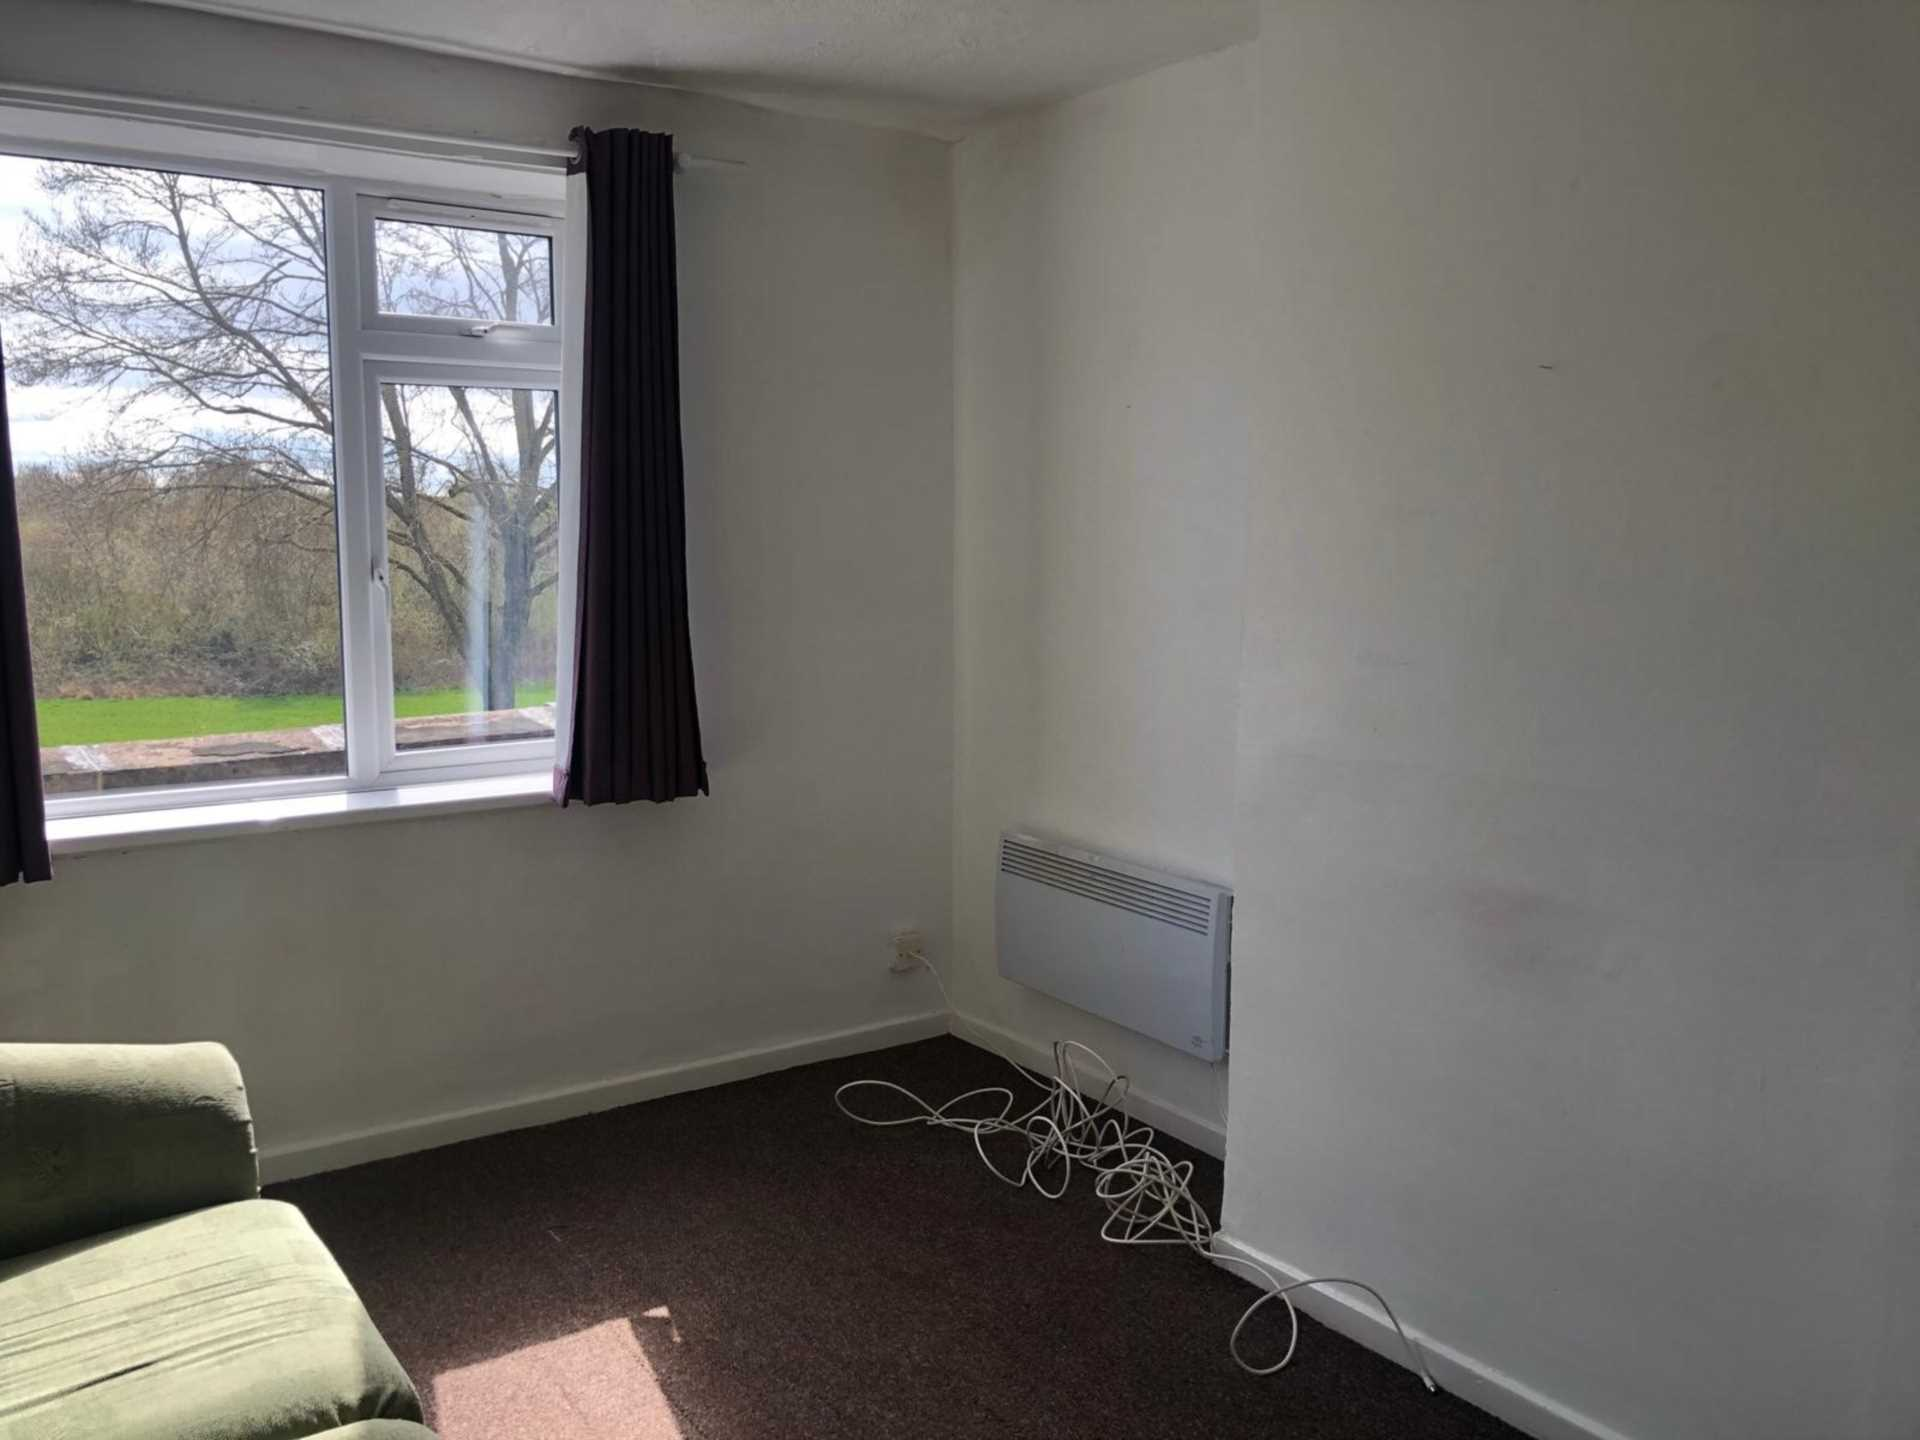 171 Daventry Road, Coventry CV3 5HF, Image 5